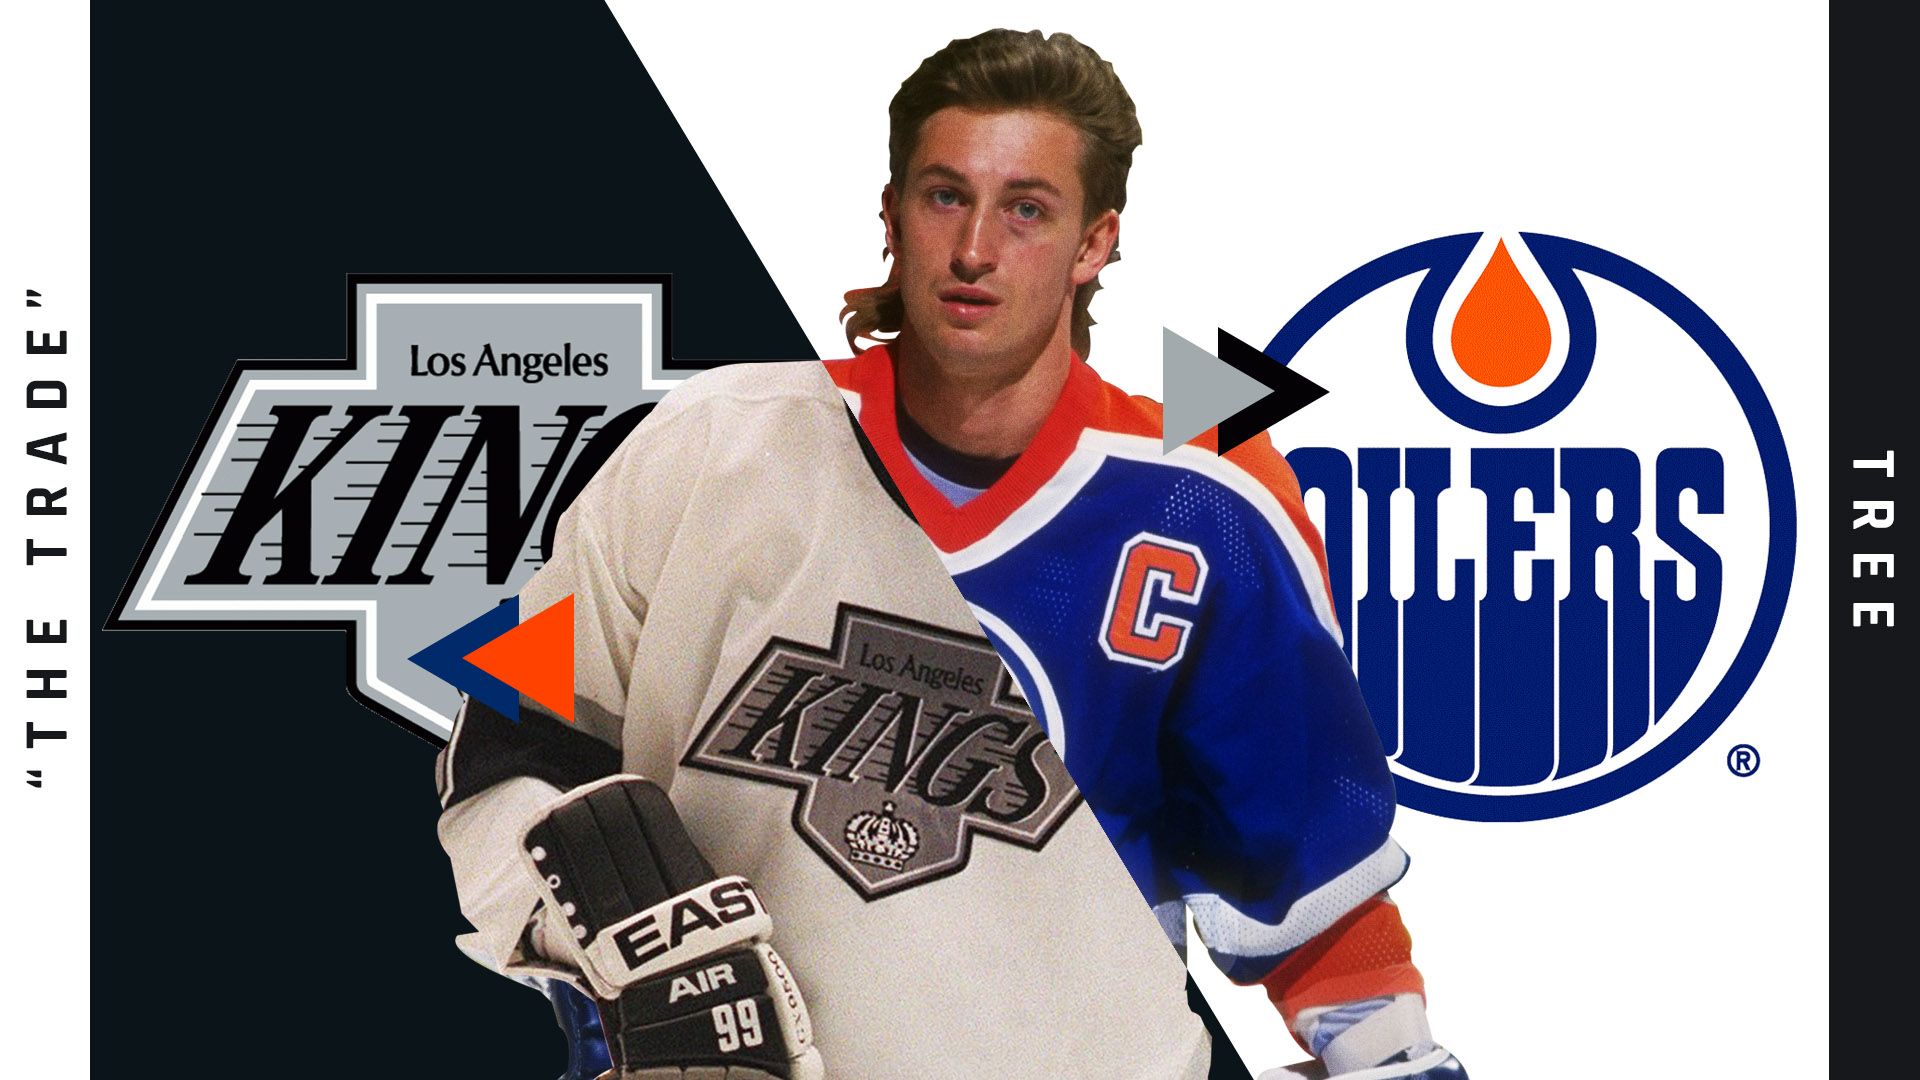 finest selection 55eee c03e8 Wayne Gretzky trade tree: 'The Trade' and the many branches ...